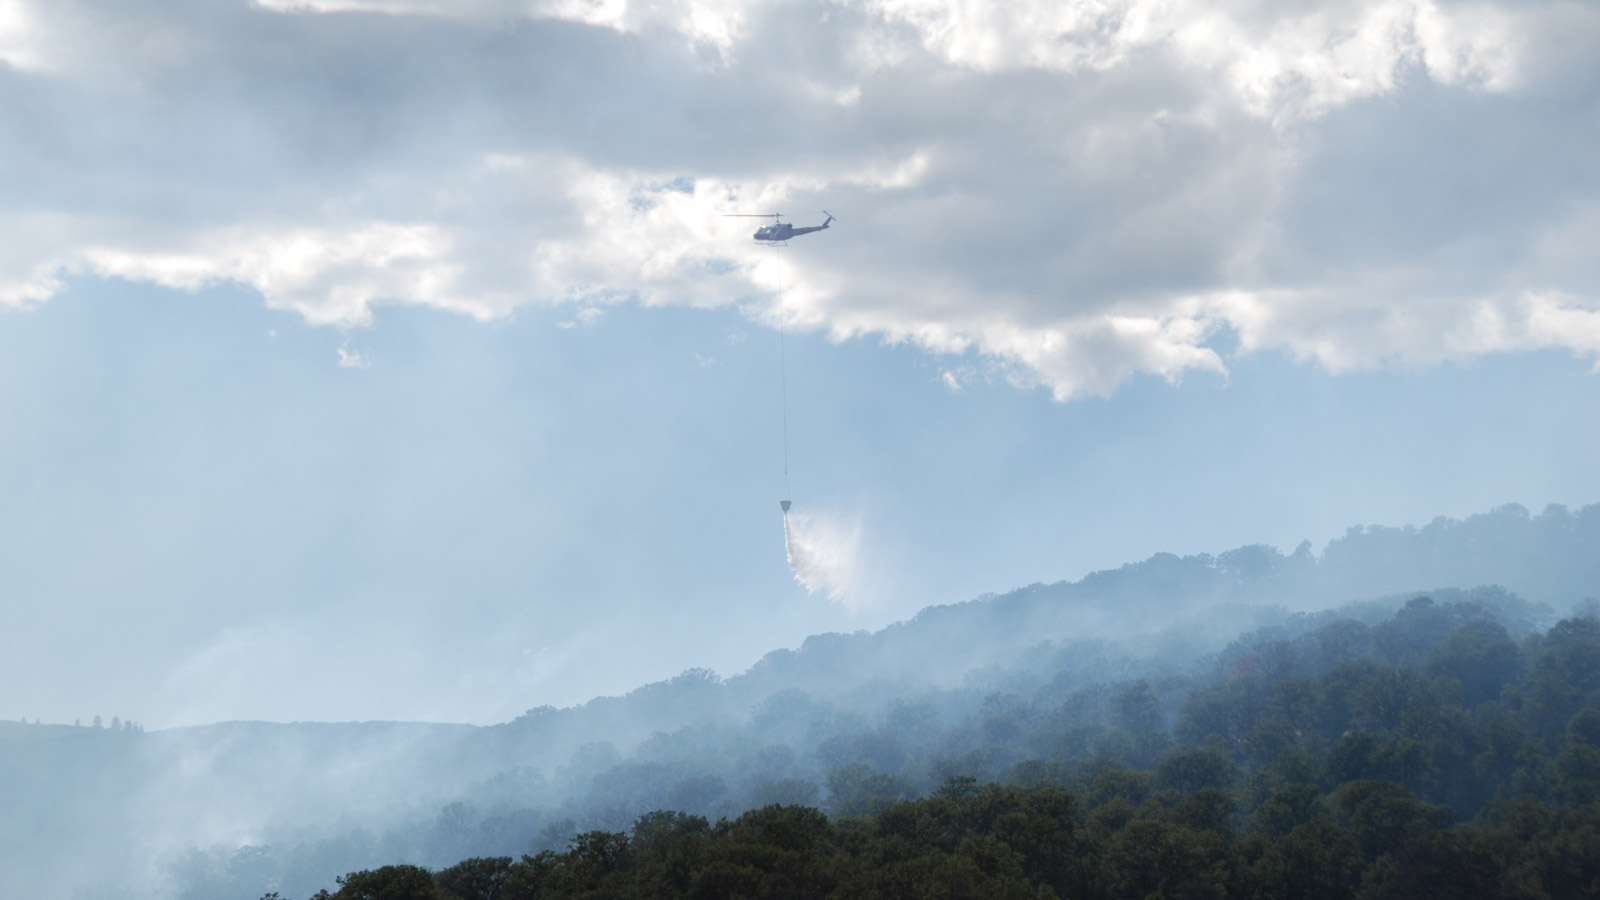 A helicopter made drops on the Red Canyon Fire burning in Garfield County (credit: Garfield County Sheriff)